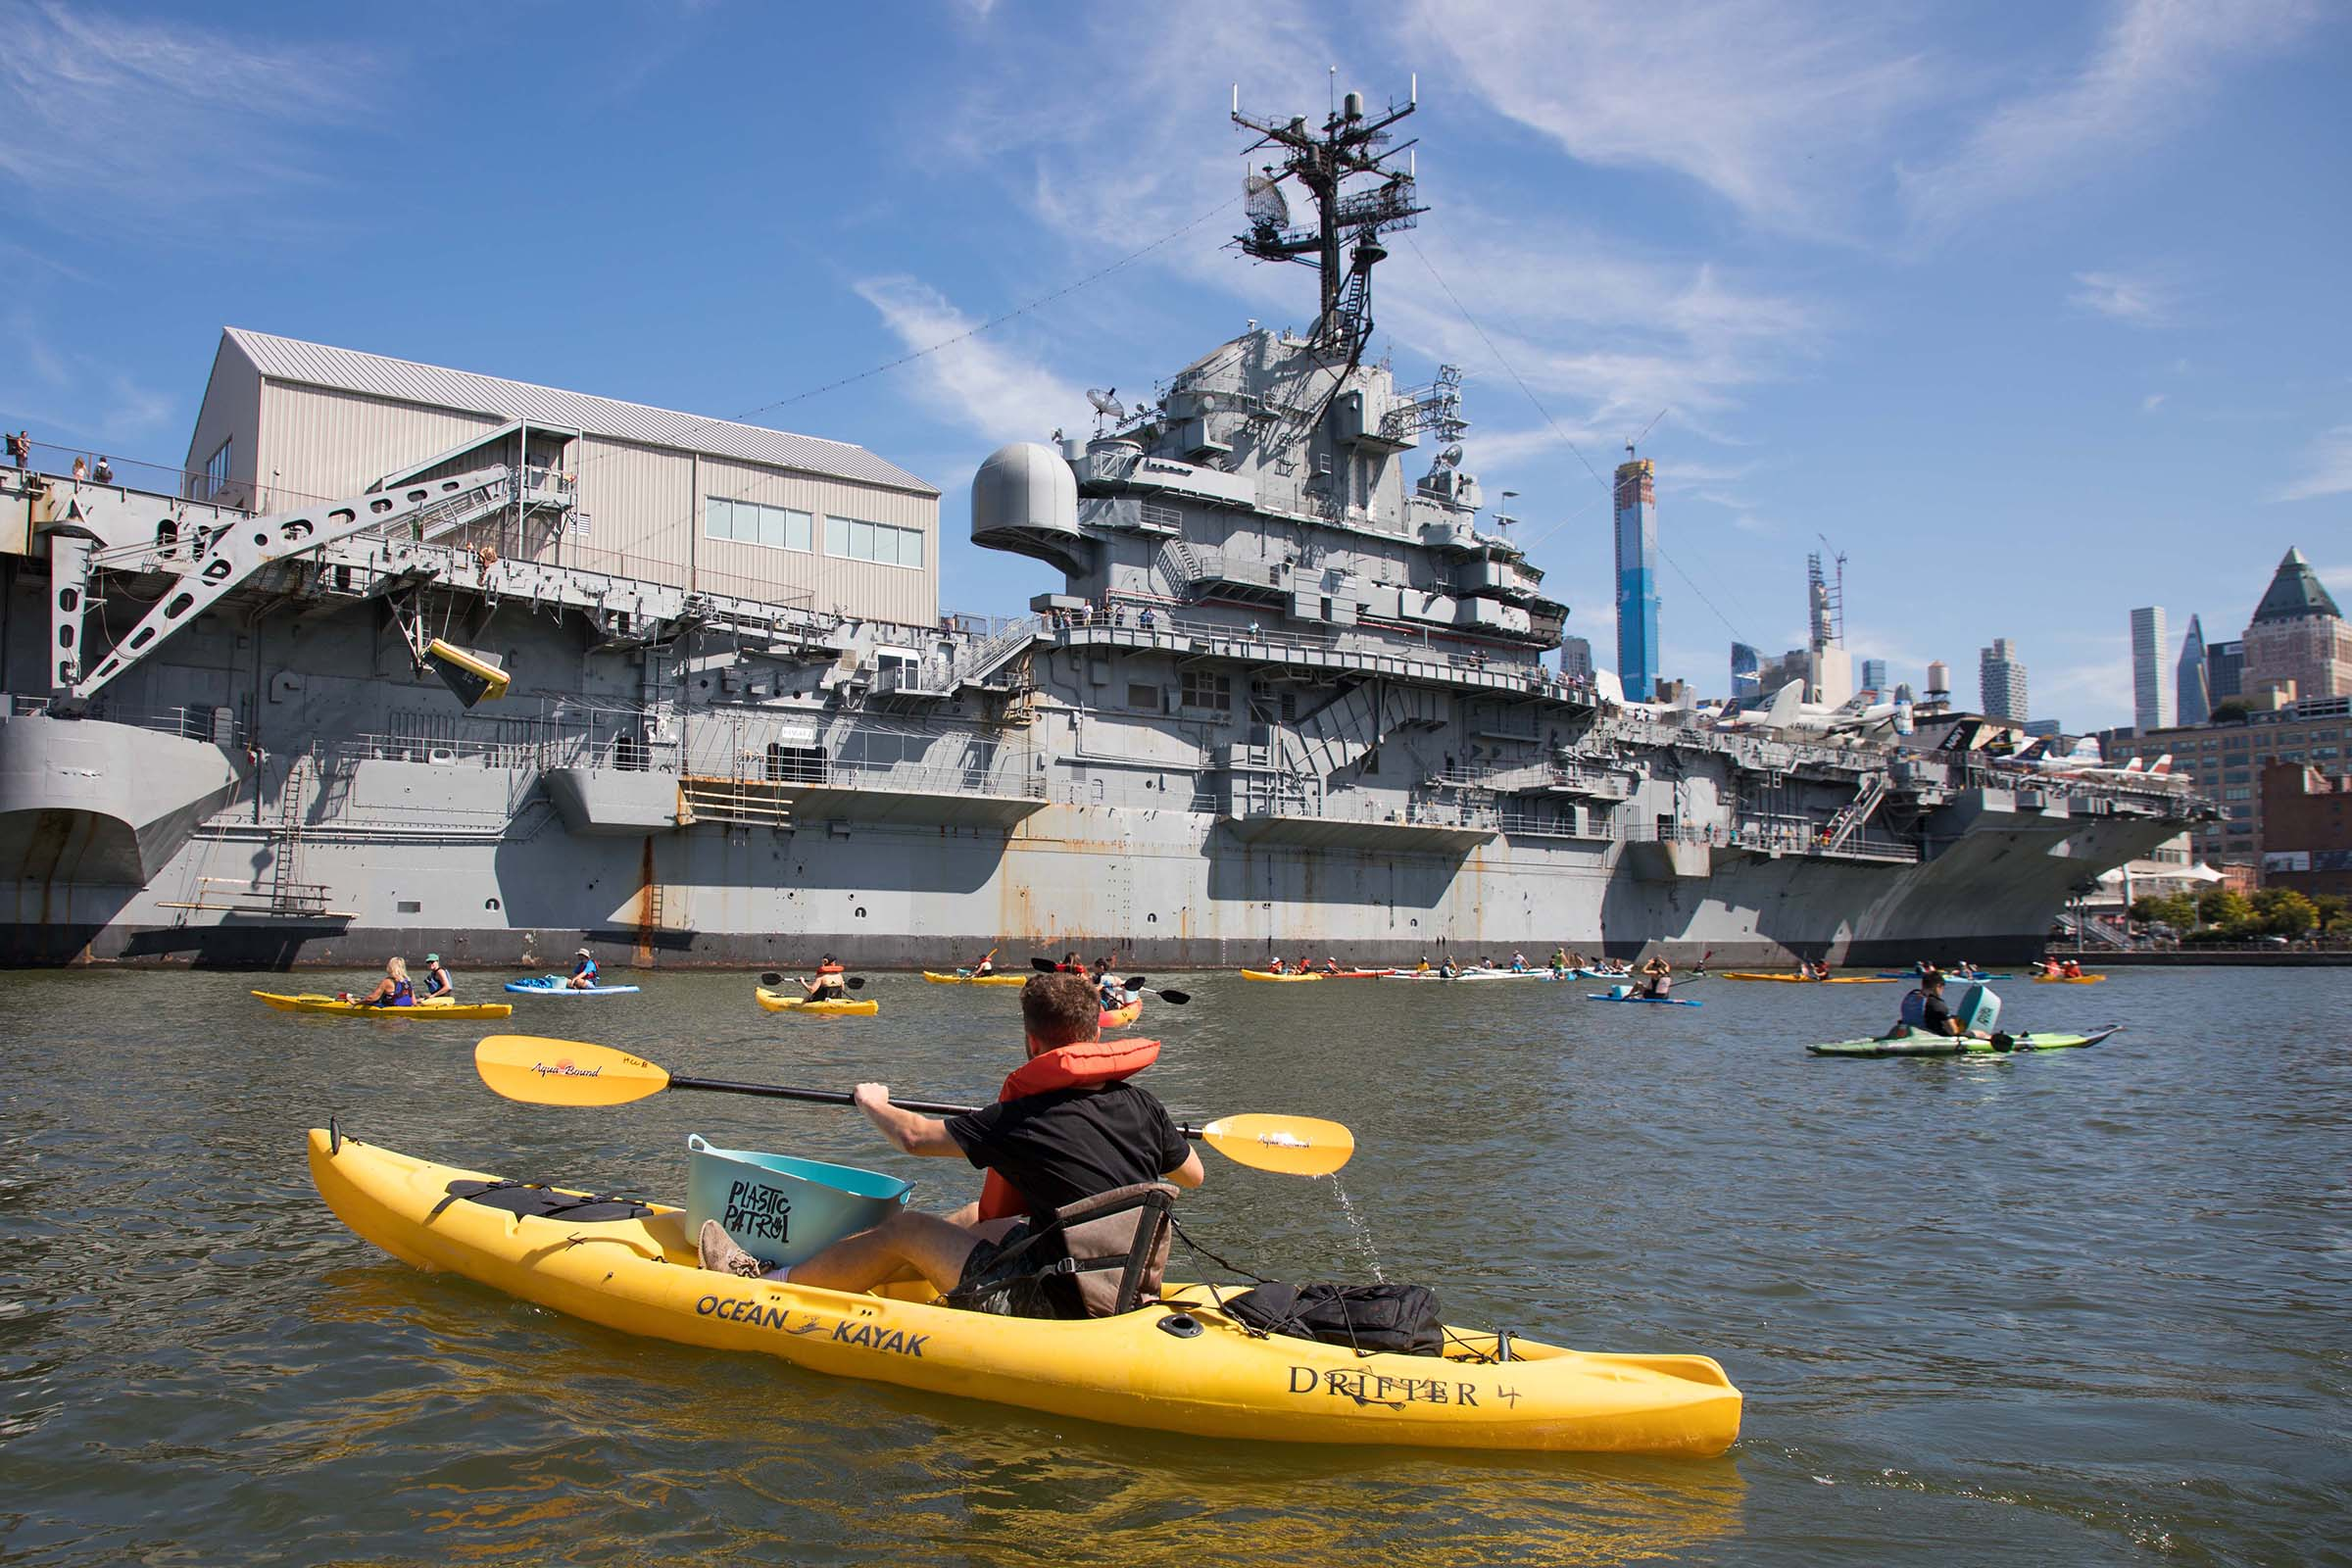 A kayaker looks on at the Intrepid vessel in the Hudson River